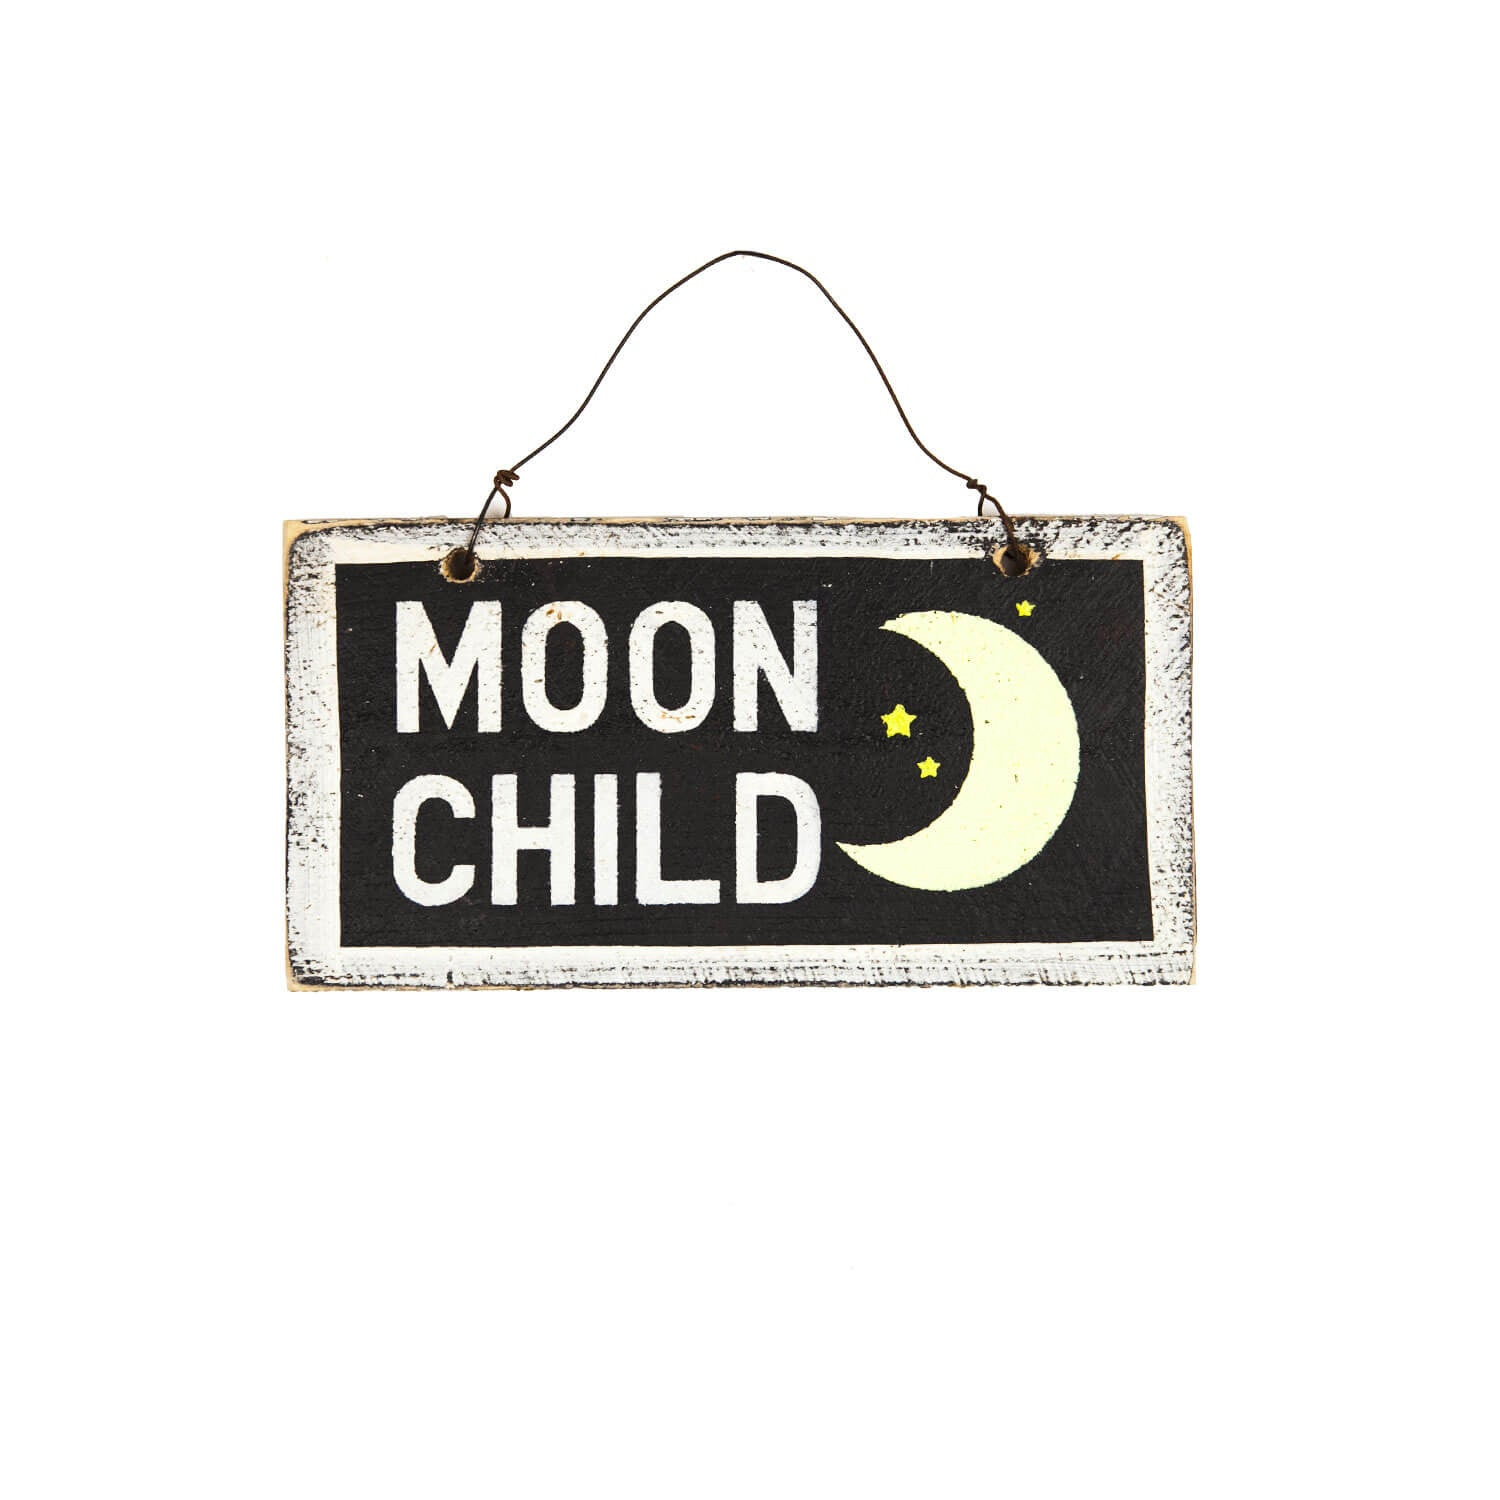 Moon Child Wooden Sign Dormify